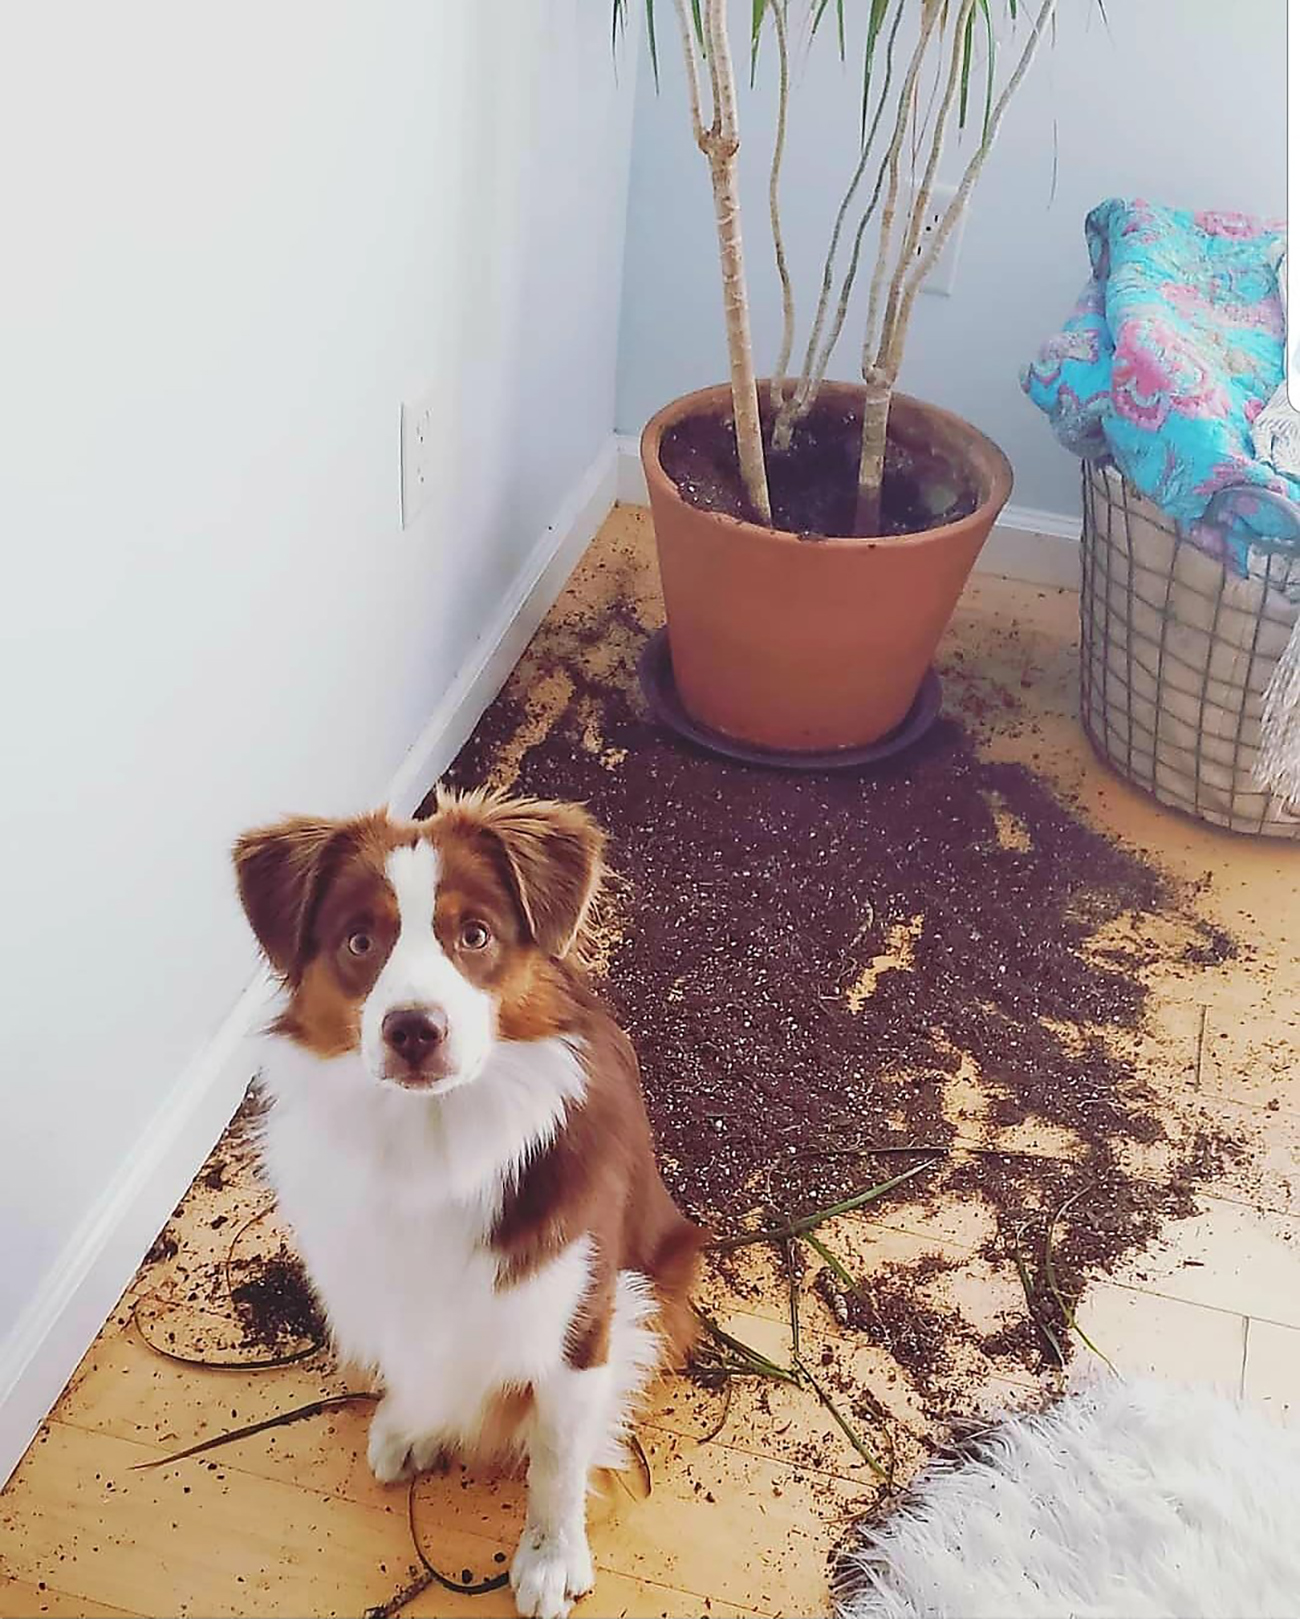 dog looks up at camera while sitting in front of destroyed house plant